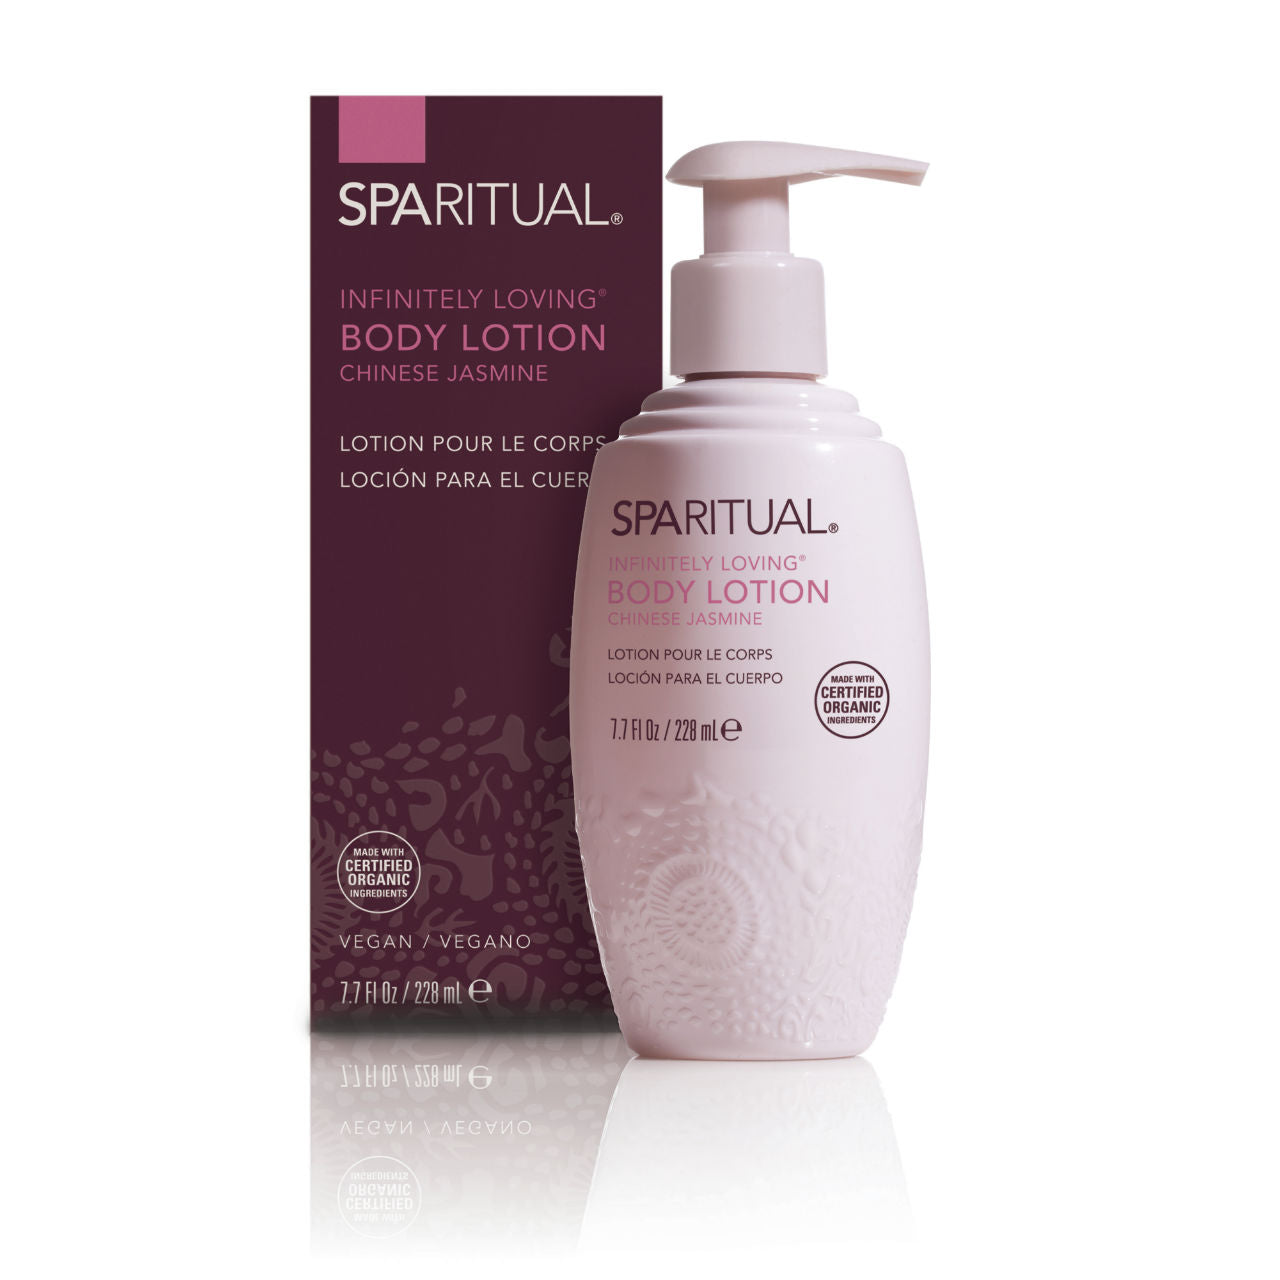 SPARITUAL Infinitely Loving Body Lotion Box